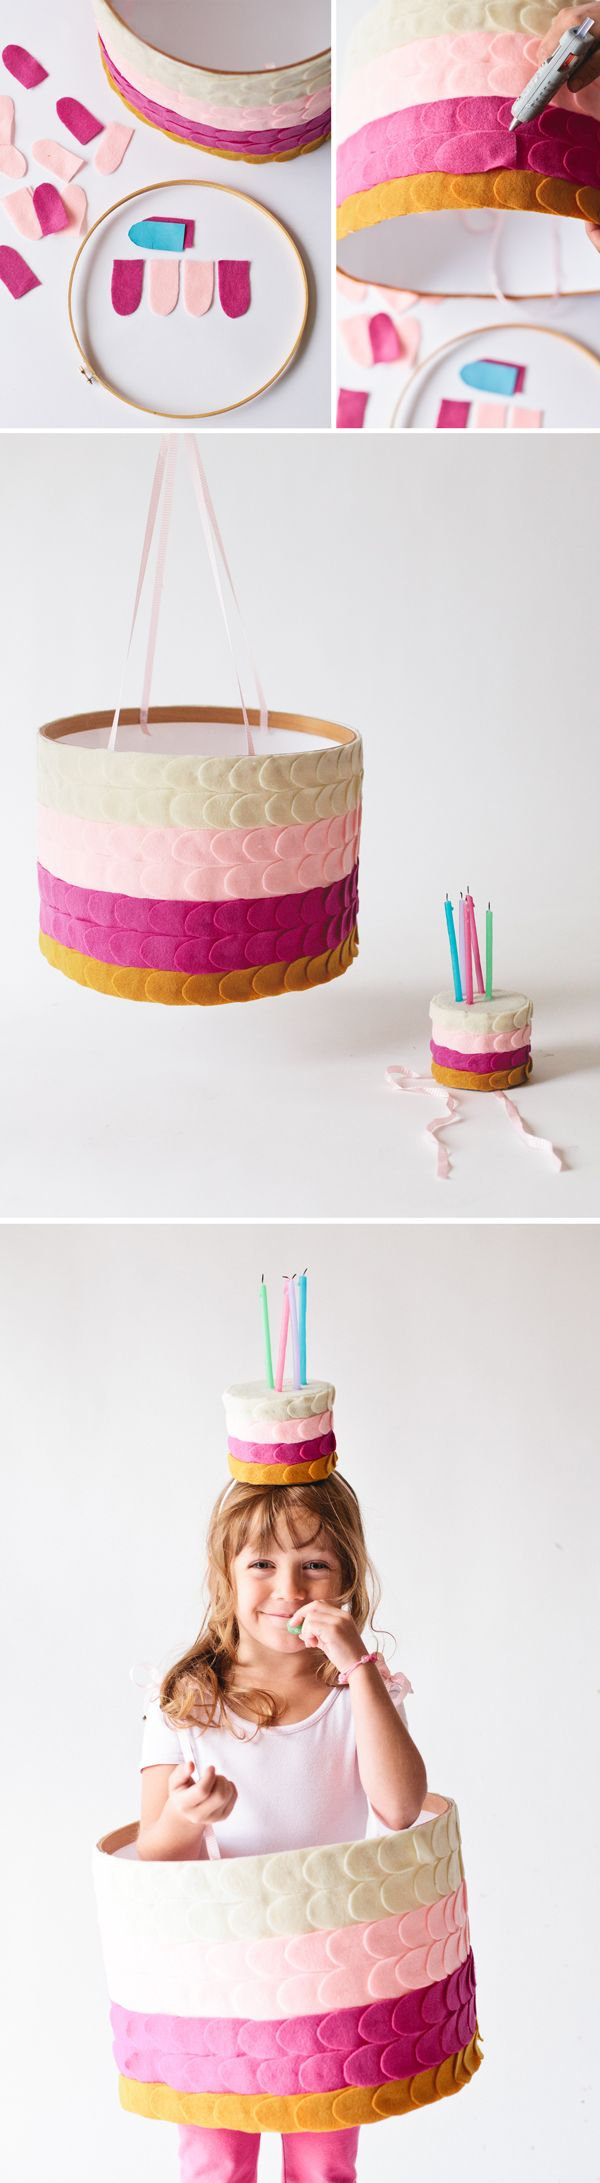 Handmade Birthday Cake Costume from @Victoria Hudgins | A Subtle Revelry  sc 1 st  Pinterest & birthday cake halloween costume | Pinterest | Birthday cakes ...